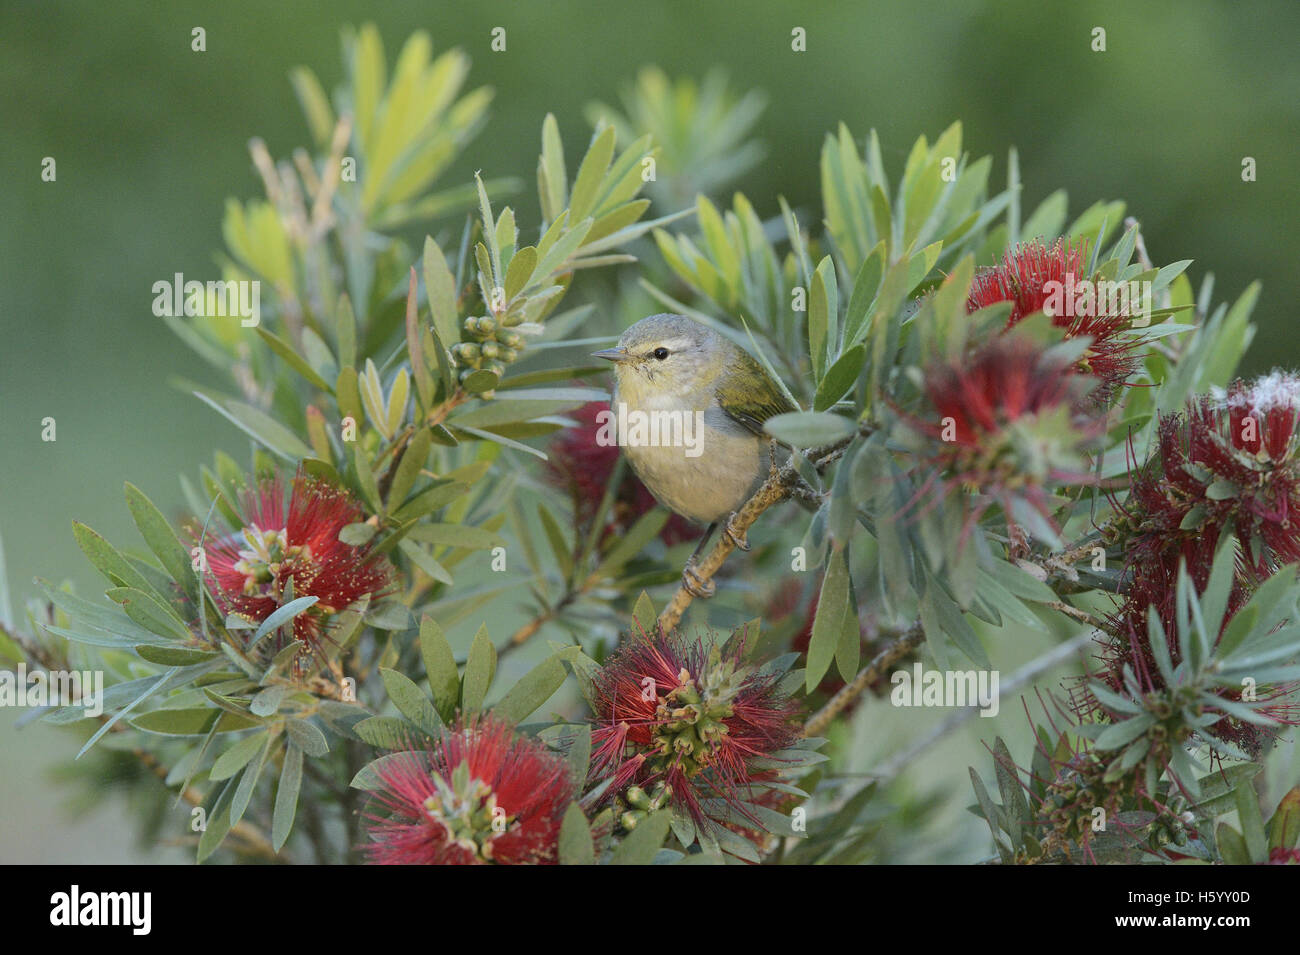 Tennessee Warbler (Vermivora peregrina), adult feeding on blooming Lemon bottlebrush, crimson bottlebrush, Texas - Stock Image